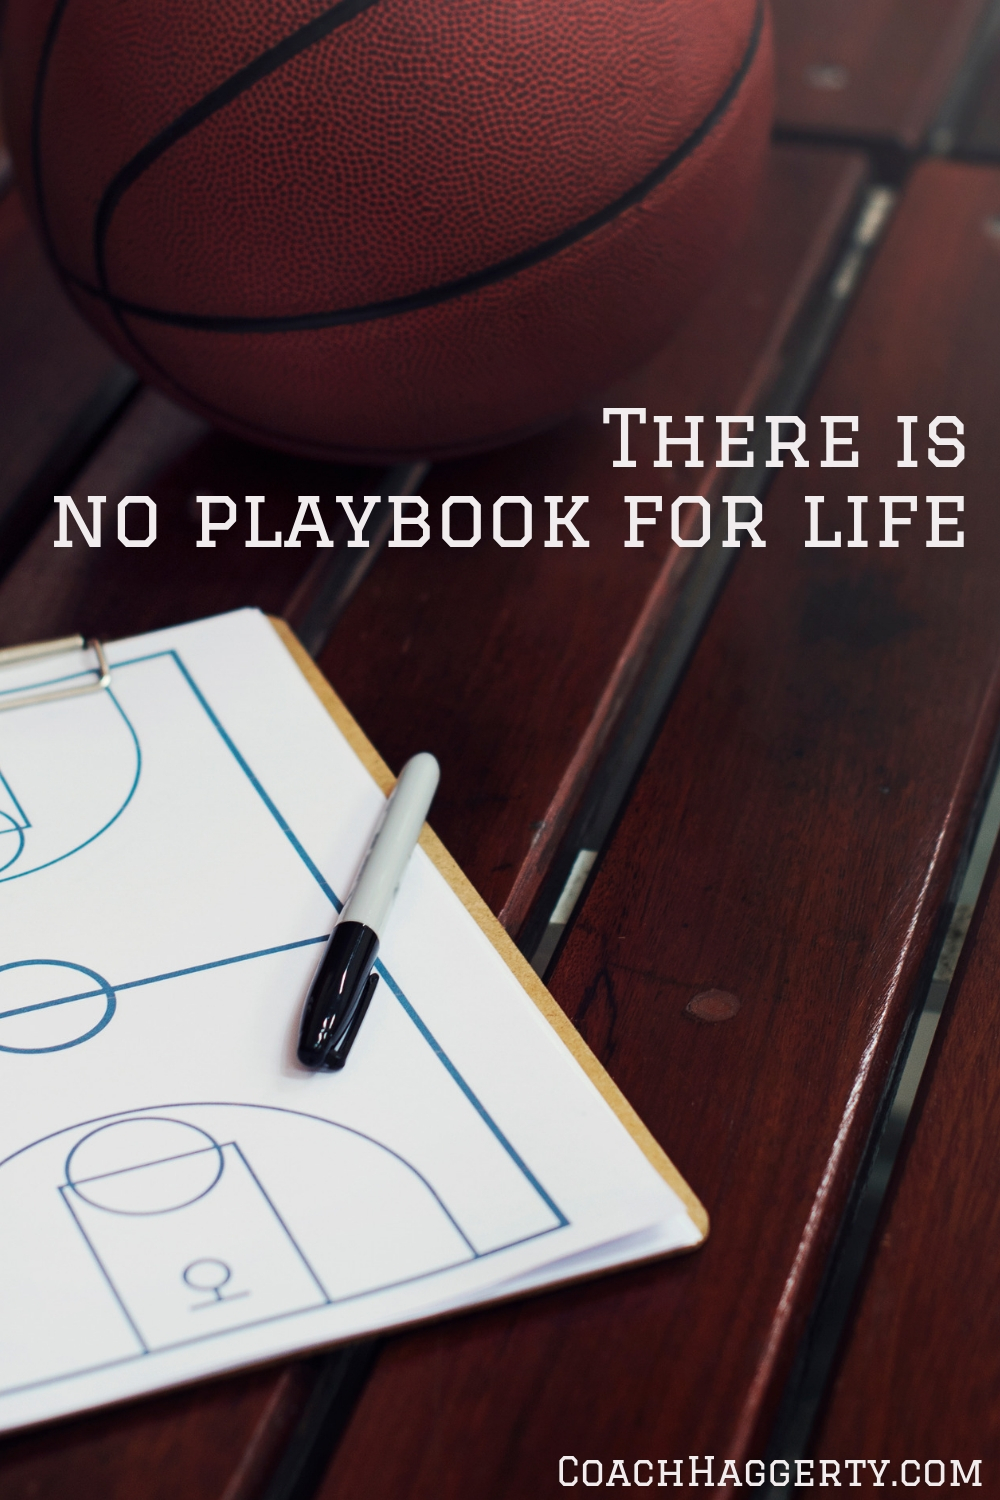 From getting sober to coaching basketball in West Philadelphia, then ultimately losing a player...there really is no playbook for life. | @CoachHaggerty